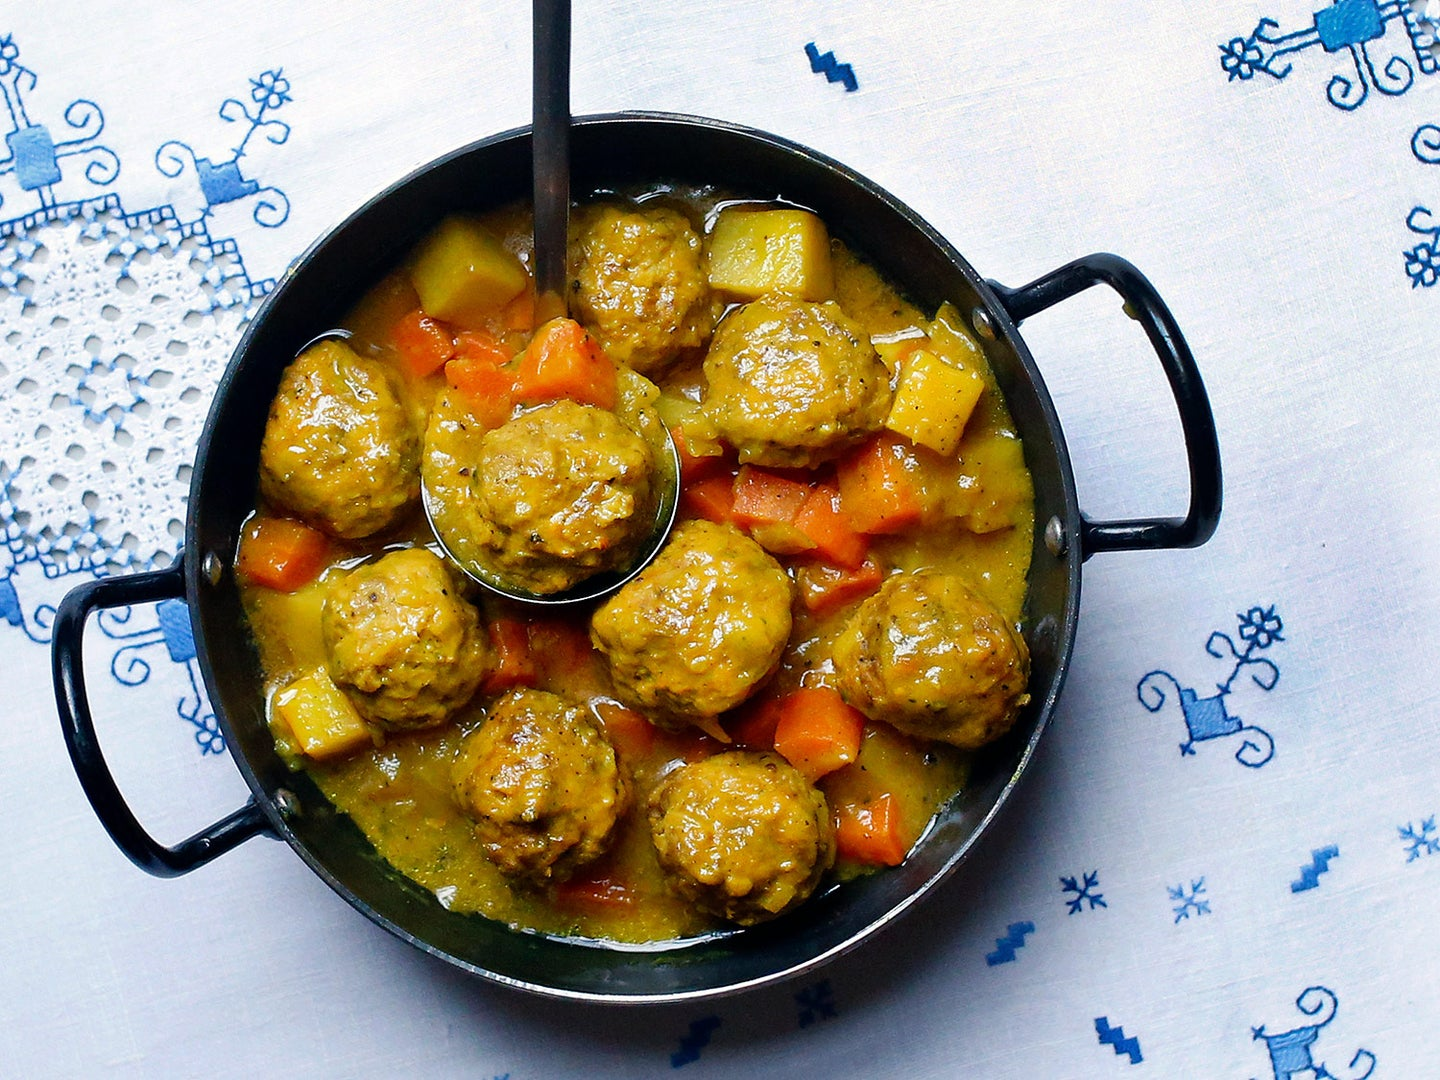 Lamb Meatballs with Carrots and Potatoes